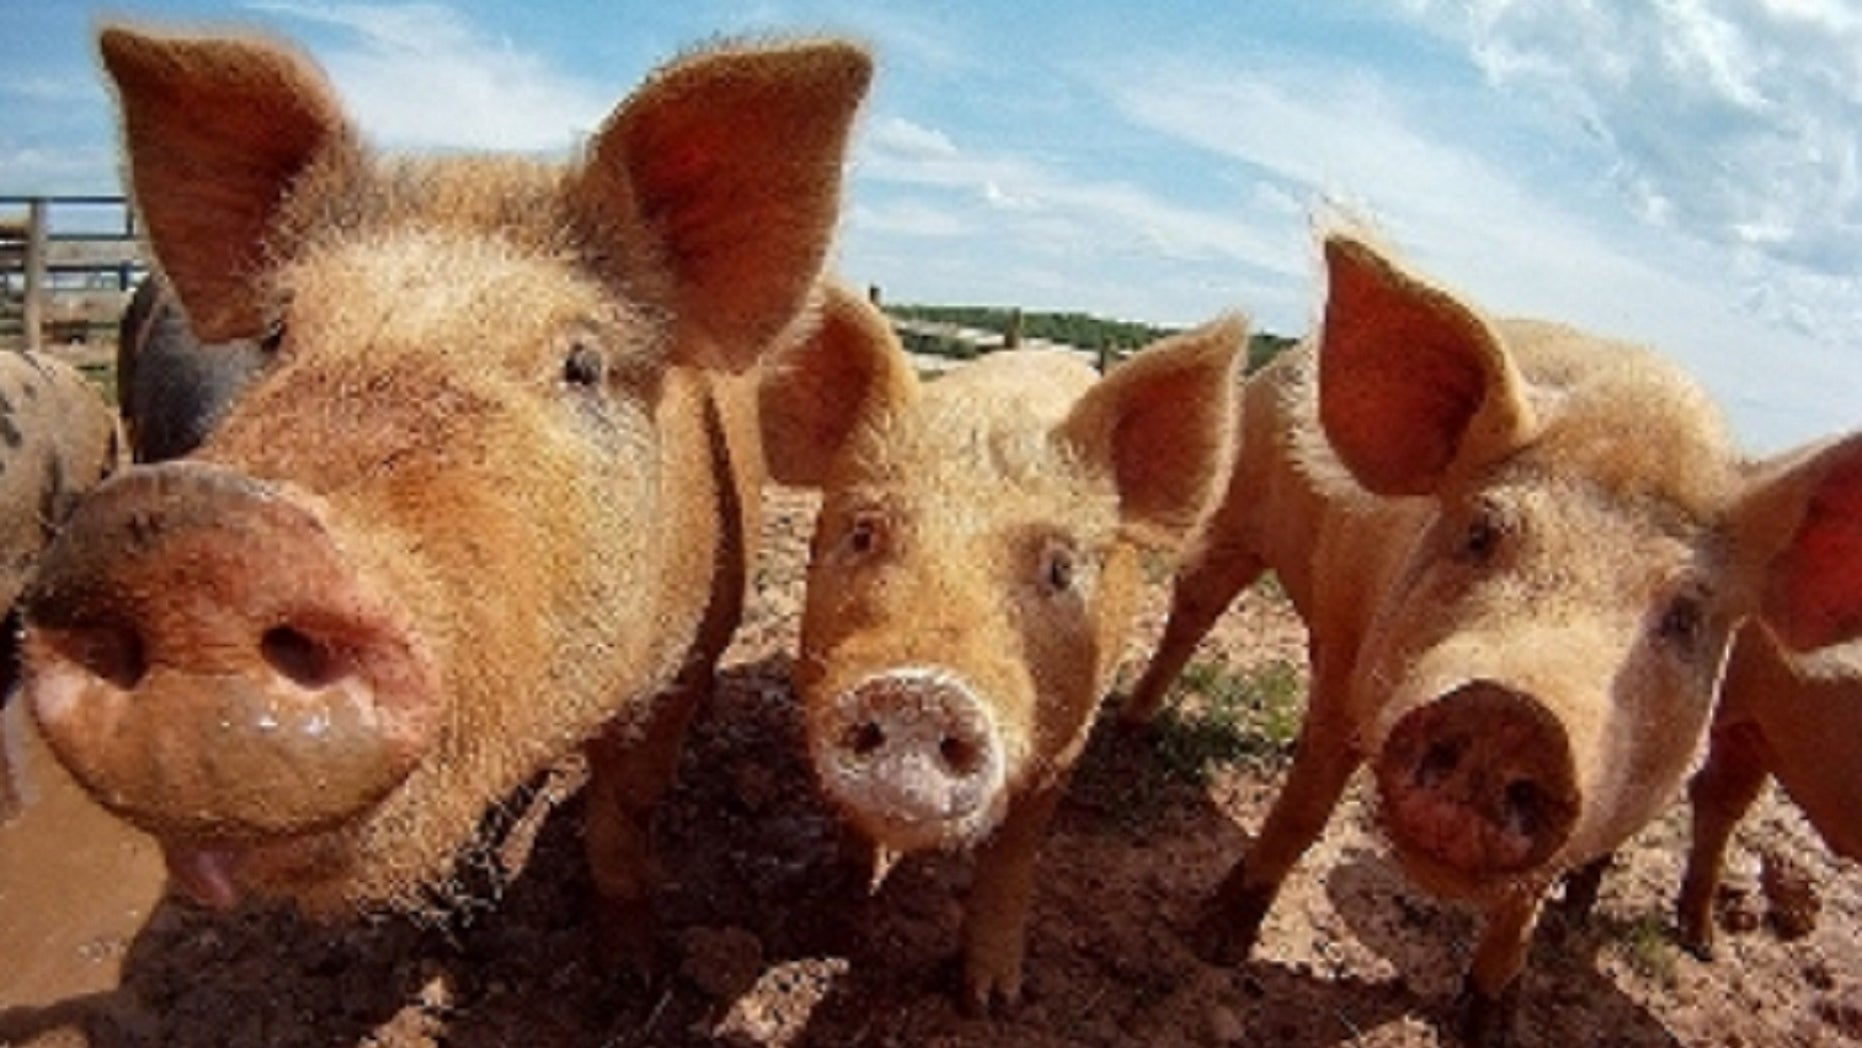 A Russian farmer was reportedly eaten by her pigs after she collapsed into the pen from an epileptic seizure.